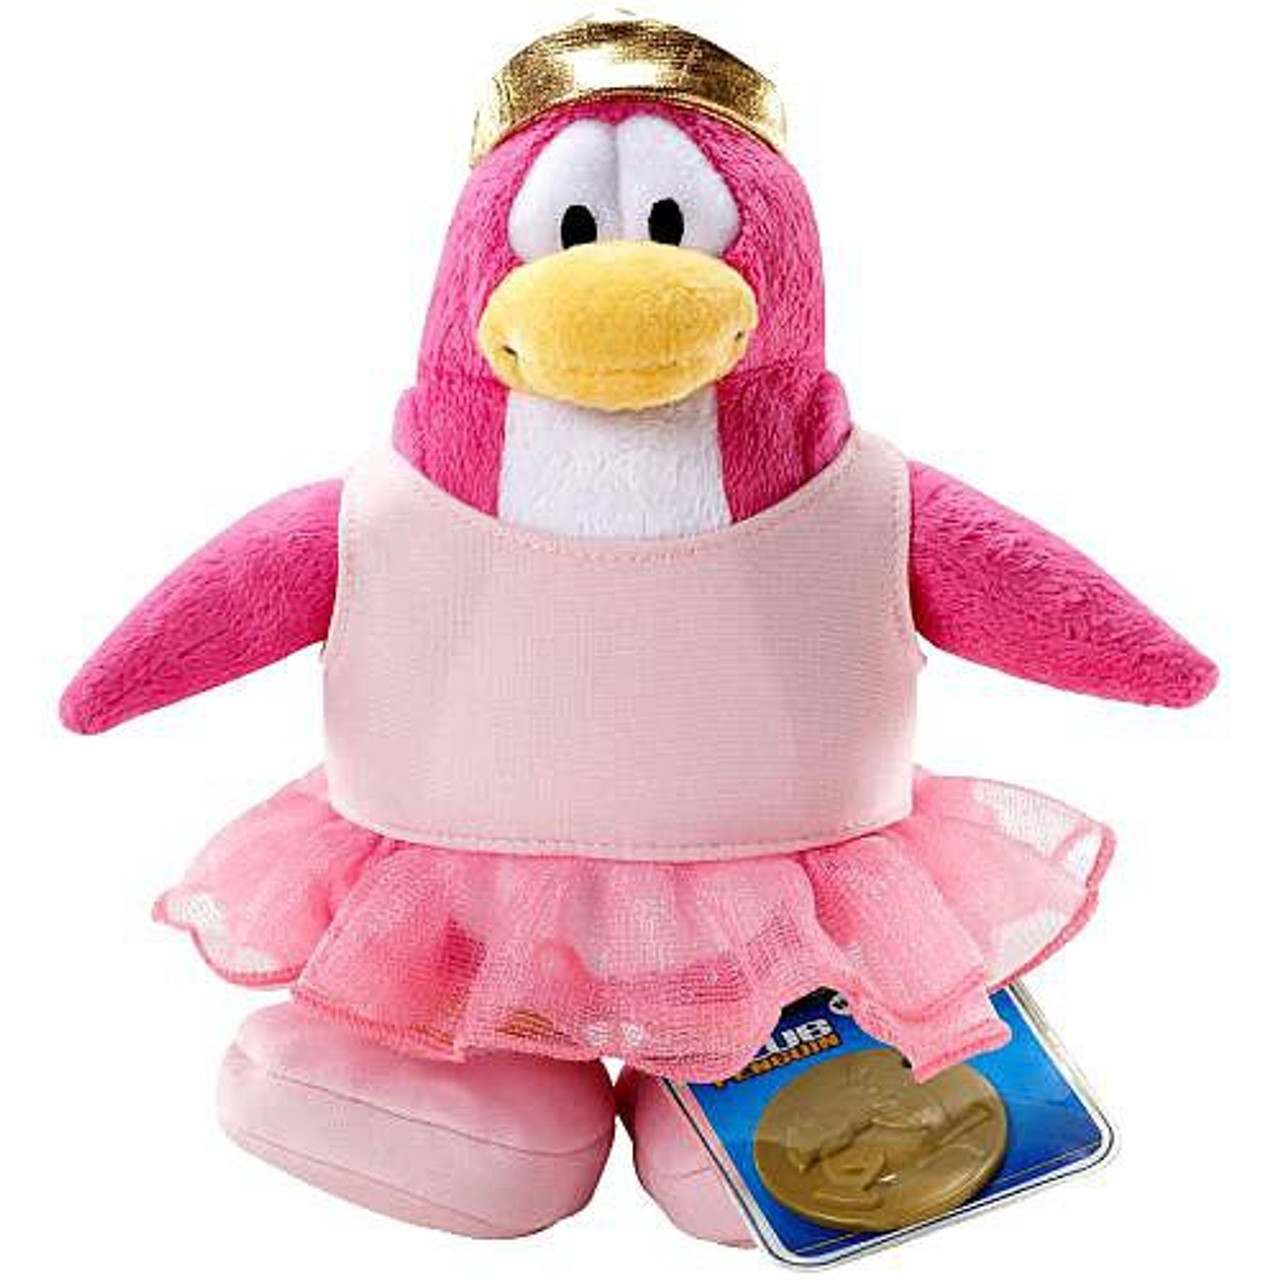 Club Penguin Series 2 Ballerina 6.5-Inch Plush Figure